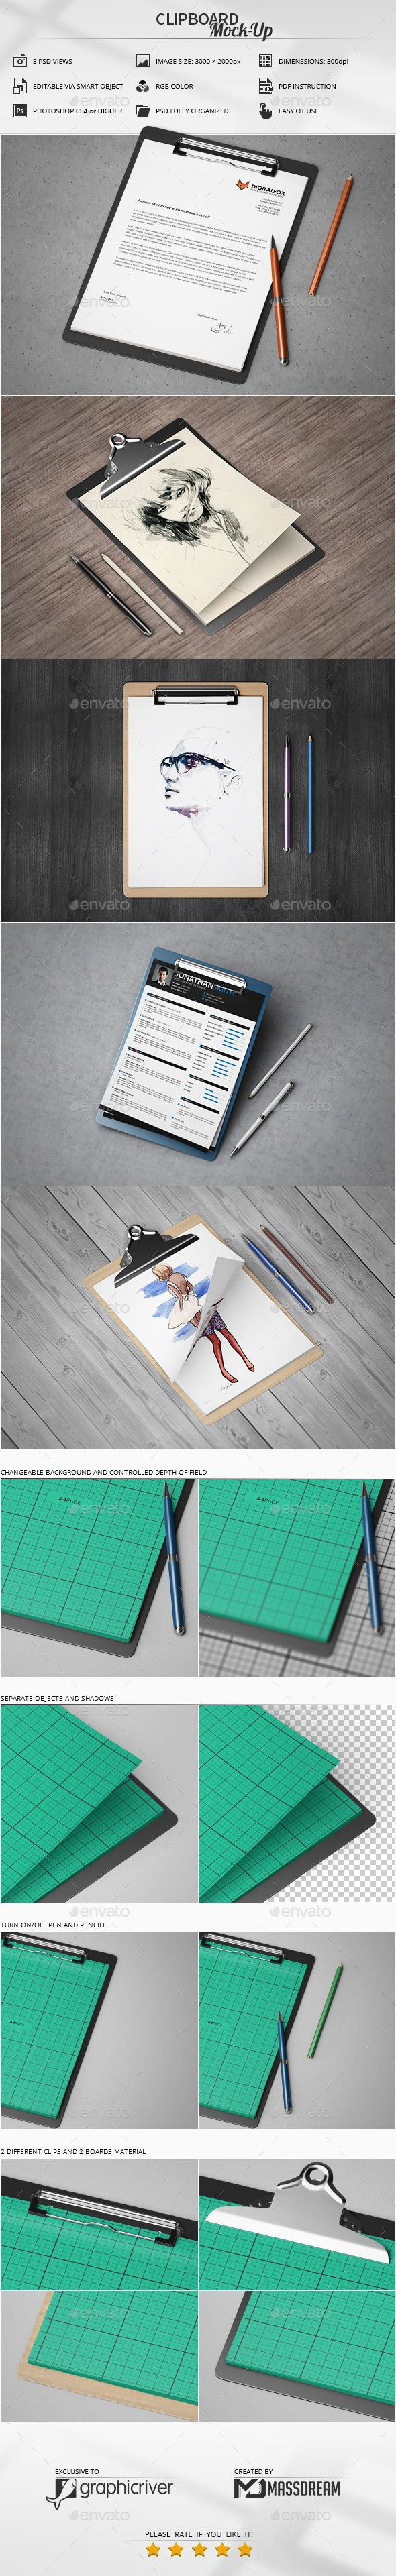 Clipboard Mock-Up by MassDream  Features 5 PSD Views / Adobe CS4 or higherHigh resolution / 3000×2000px / 300dpiEditable via smart object (A4 Page Size)PDF Instr